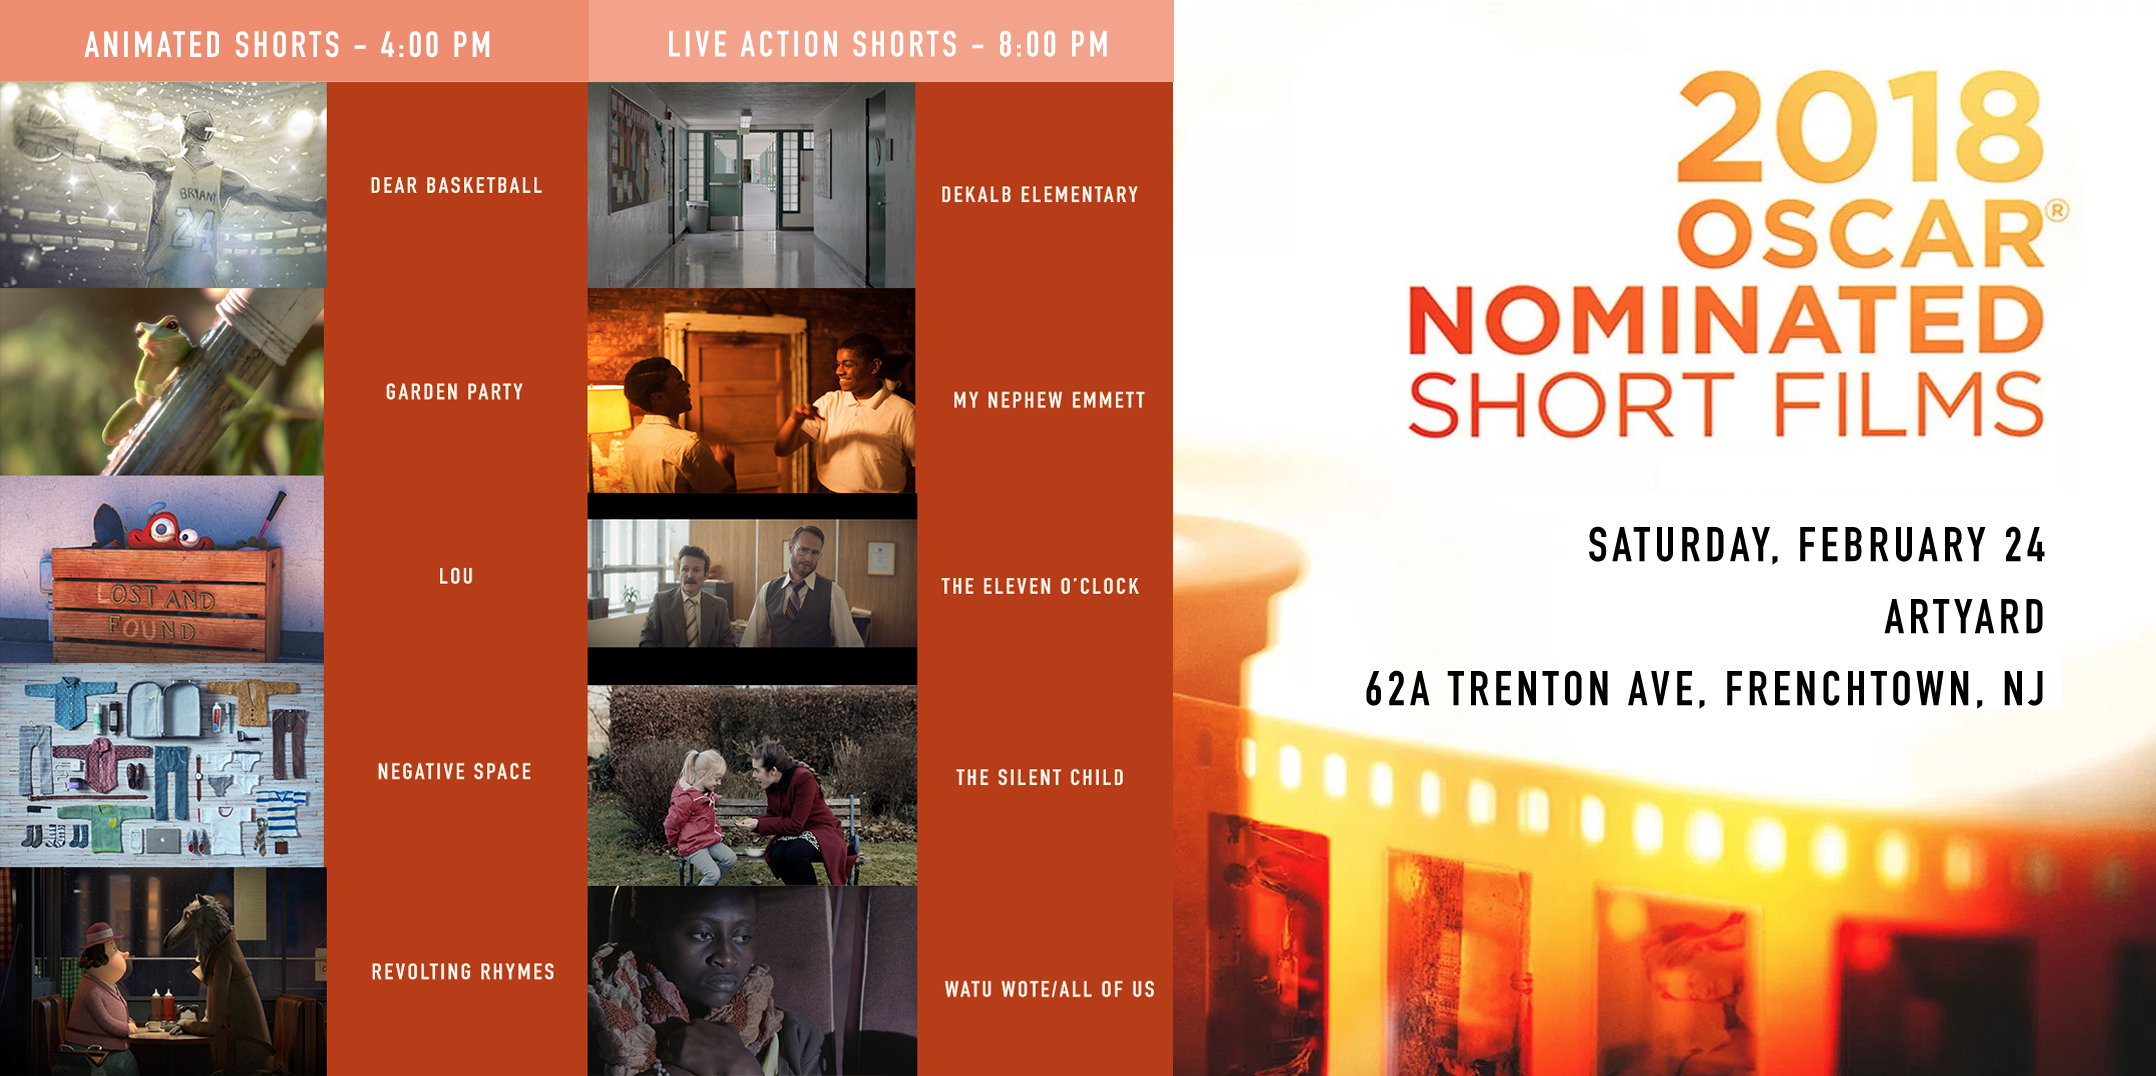 2018 Oscar Nominated Short Films. 4:00 PM SCREENING. @ ArtYard's Theater | Frenchtown | New Jersey | United States